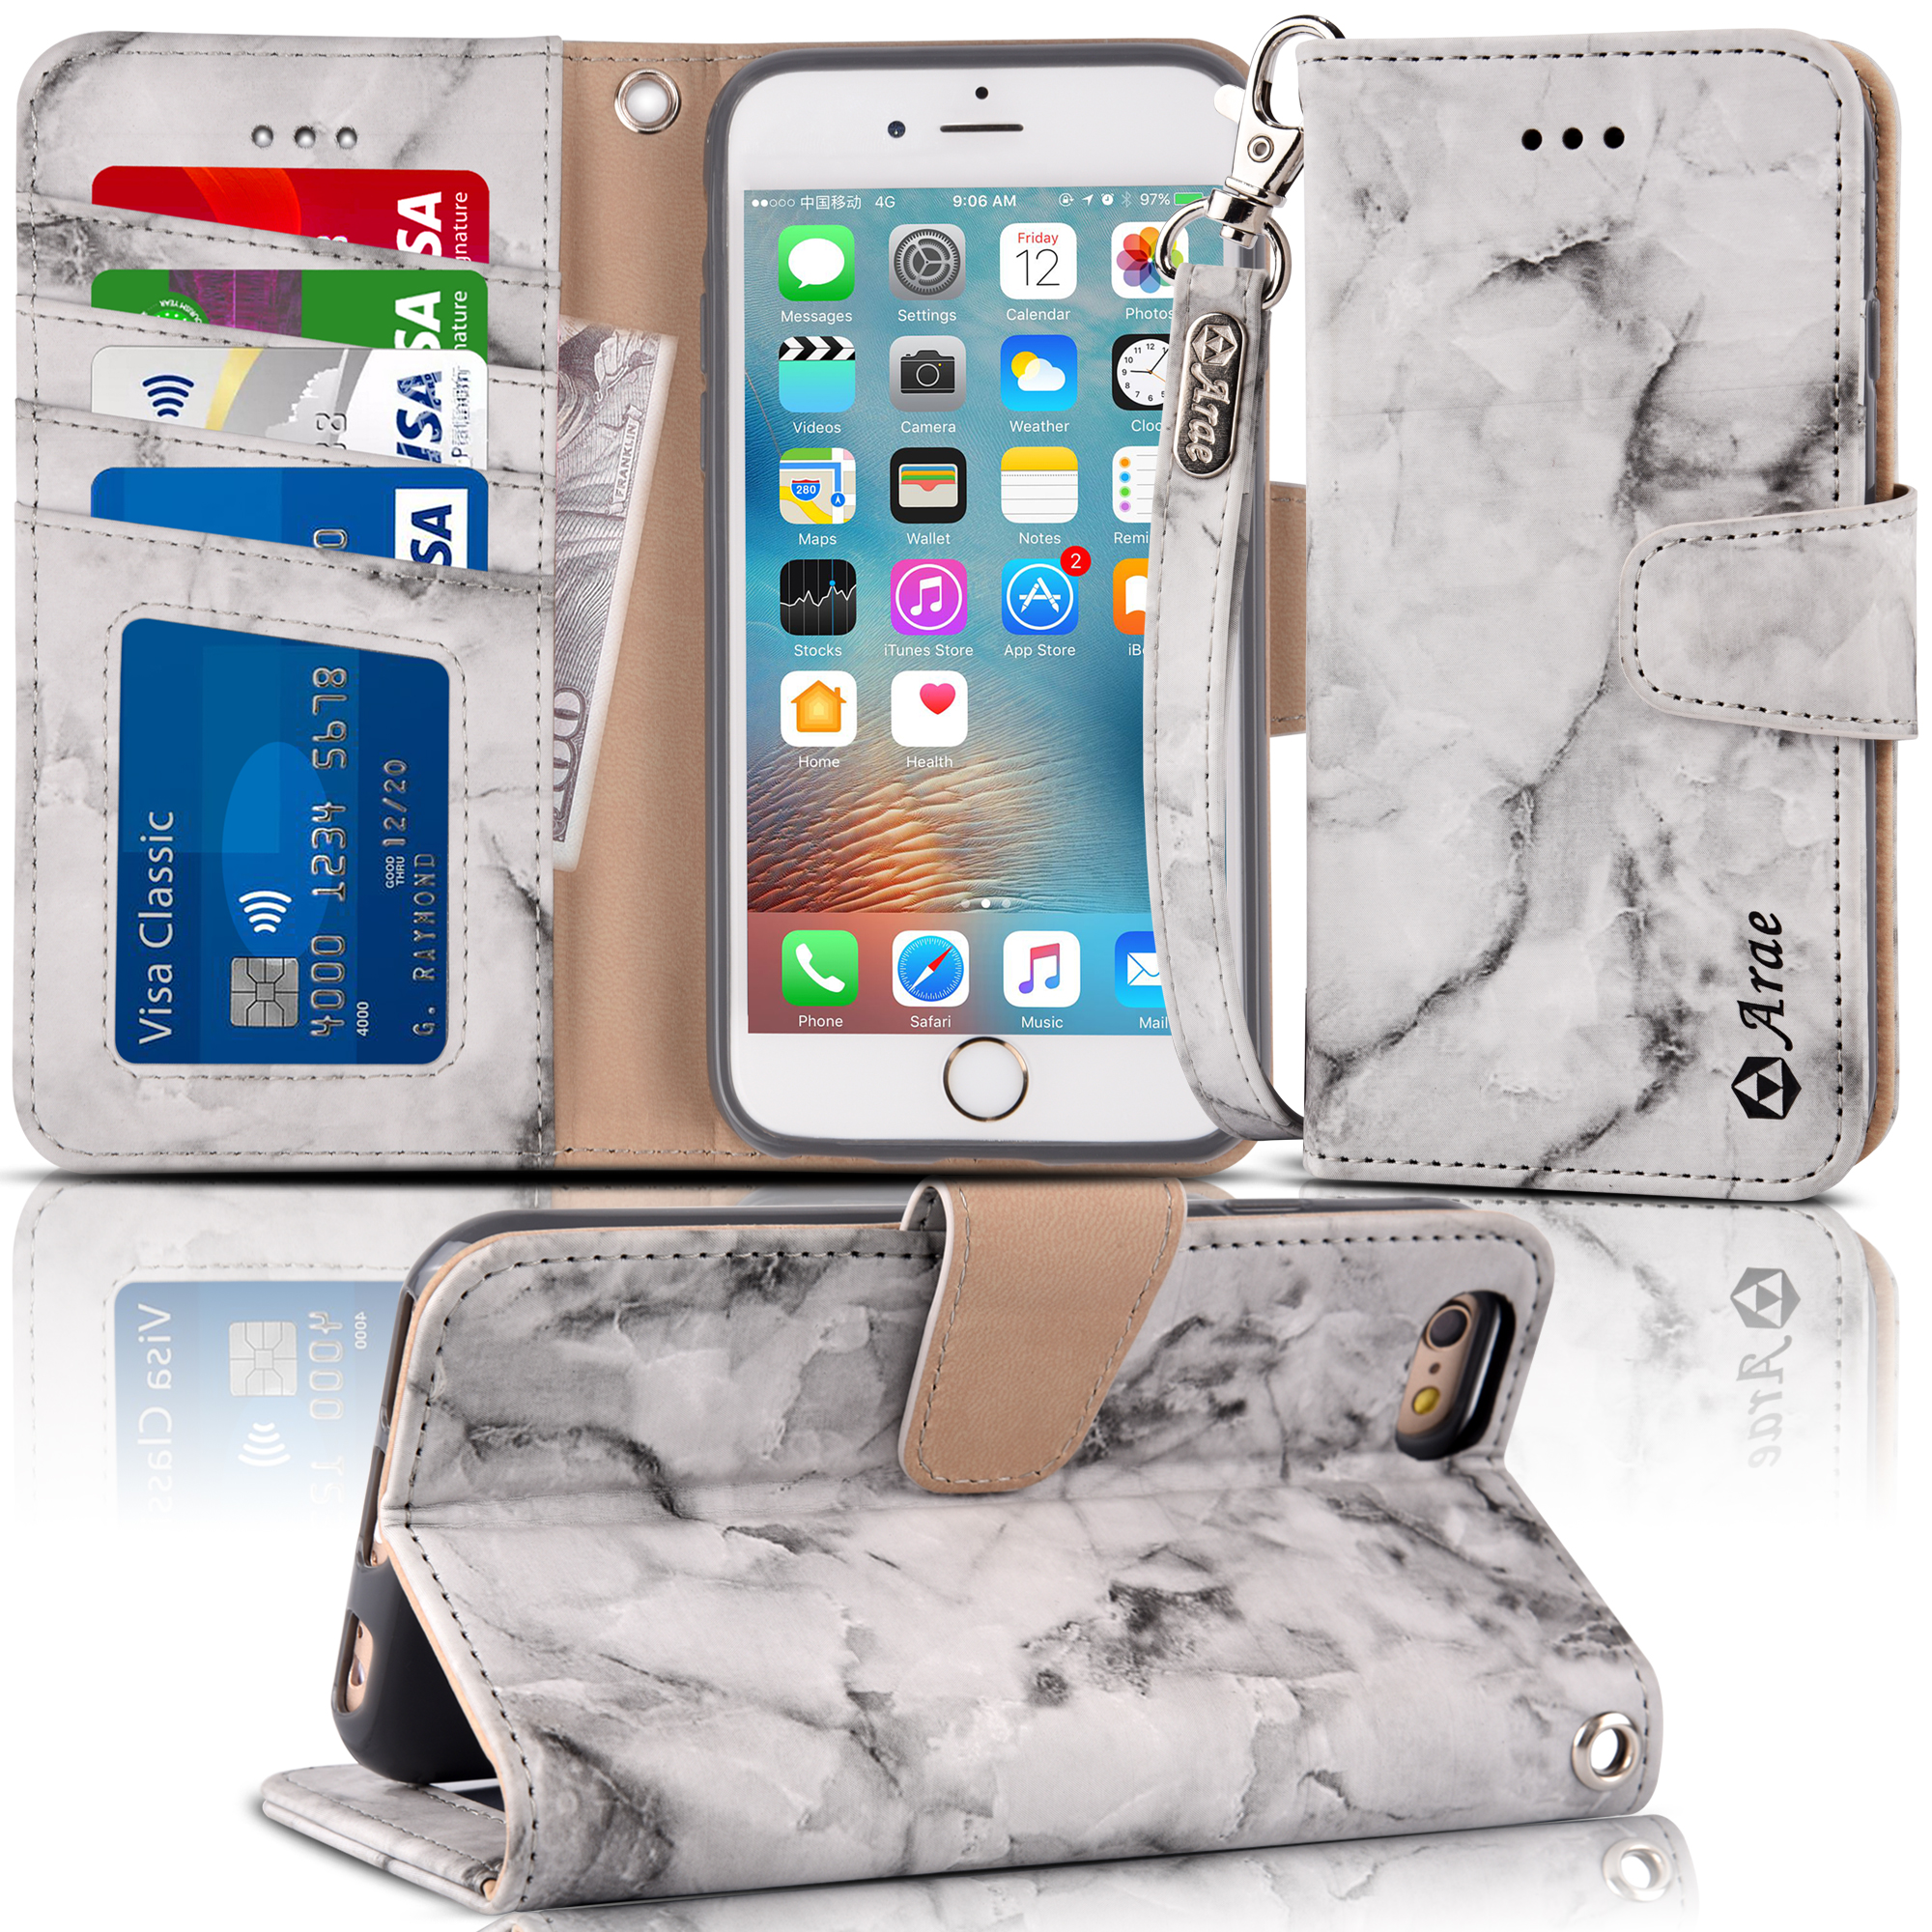 Iphone 6s / 6 New Sytle Wallet Leather Case with Kickstand And Card Slots The Upgraded Version Wallet Case for Iphone 6s / 6,rosegol,Marble black